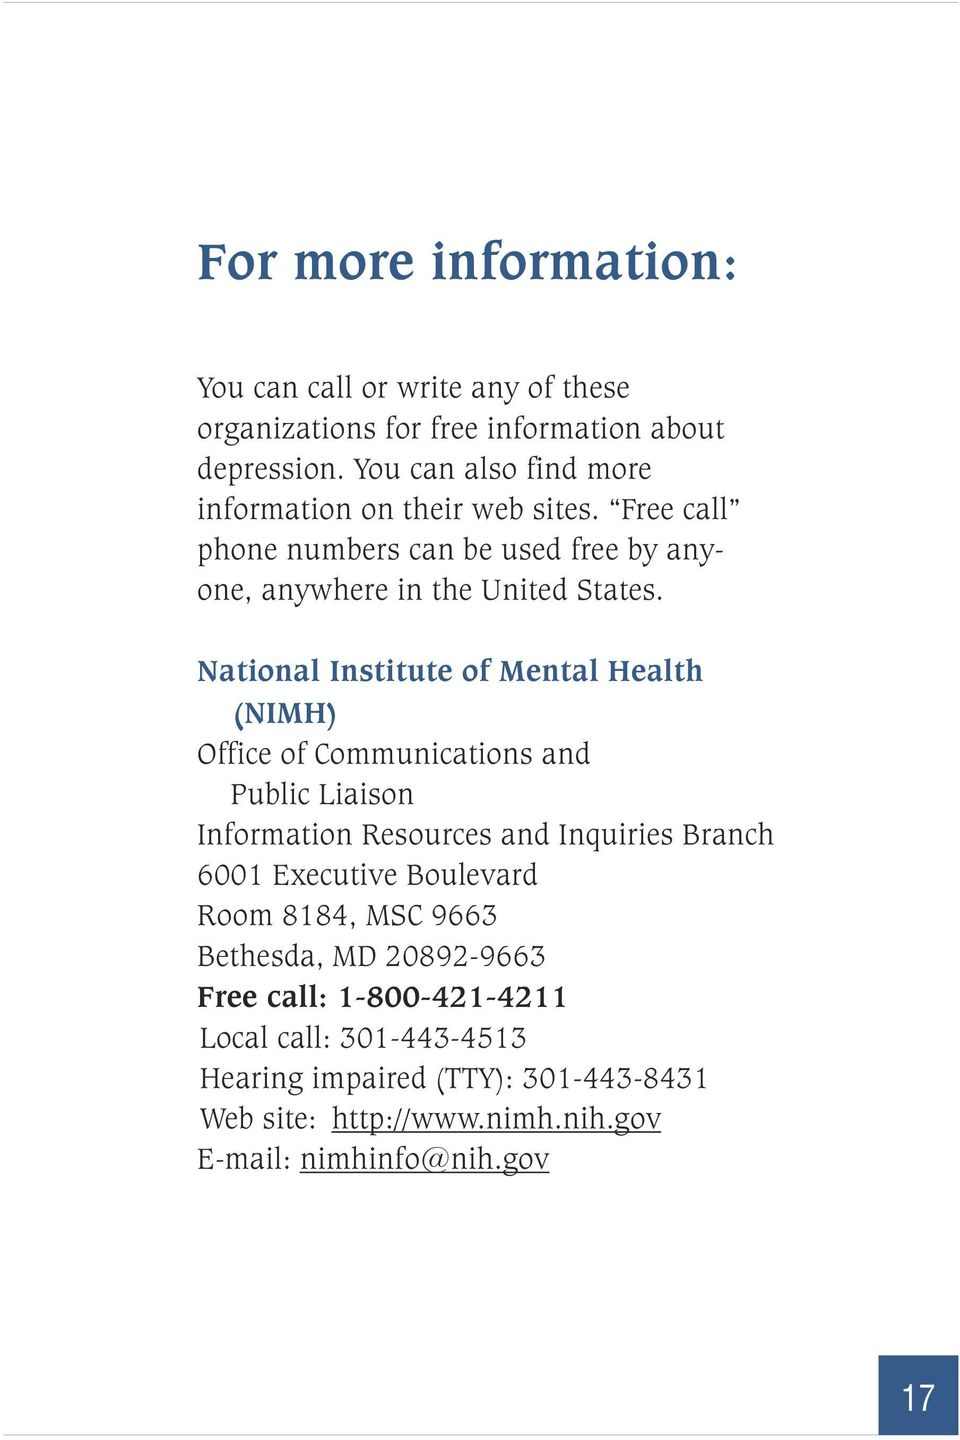 National Institute of Mental Health (NIMH) Office of Communications and Public Liaison Information Resources and Inquiries Branch 6001 Executive